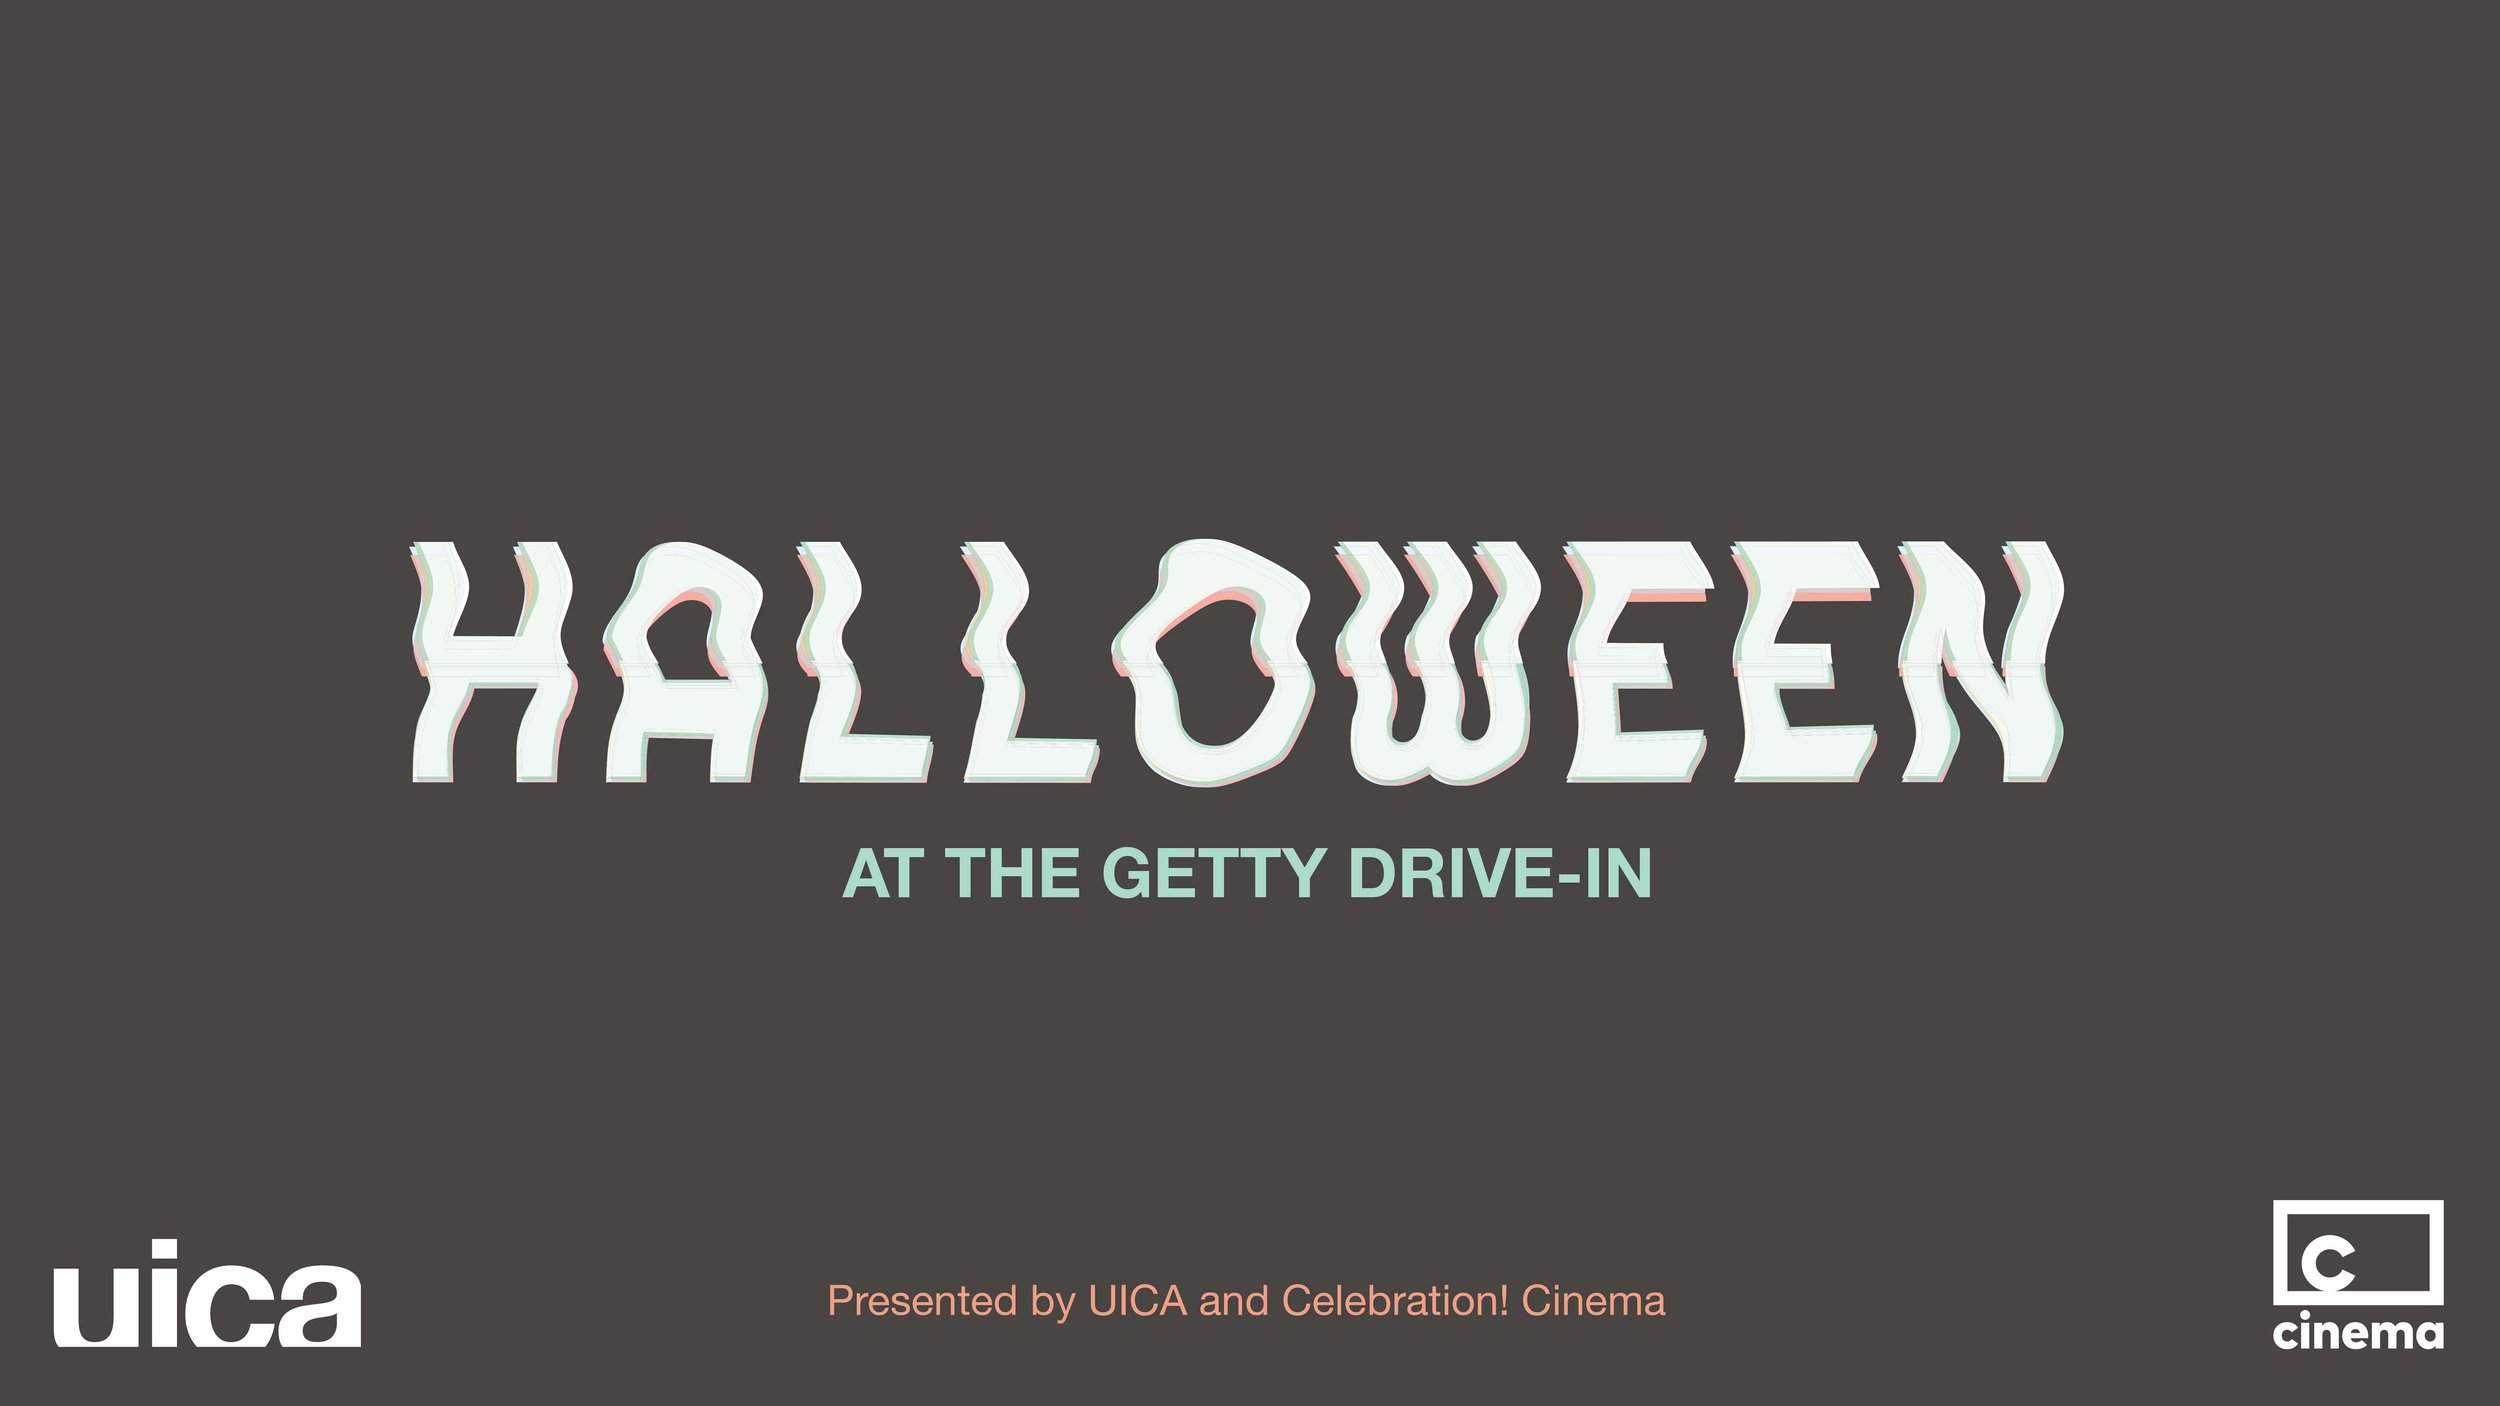 Halloween at the Getty